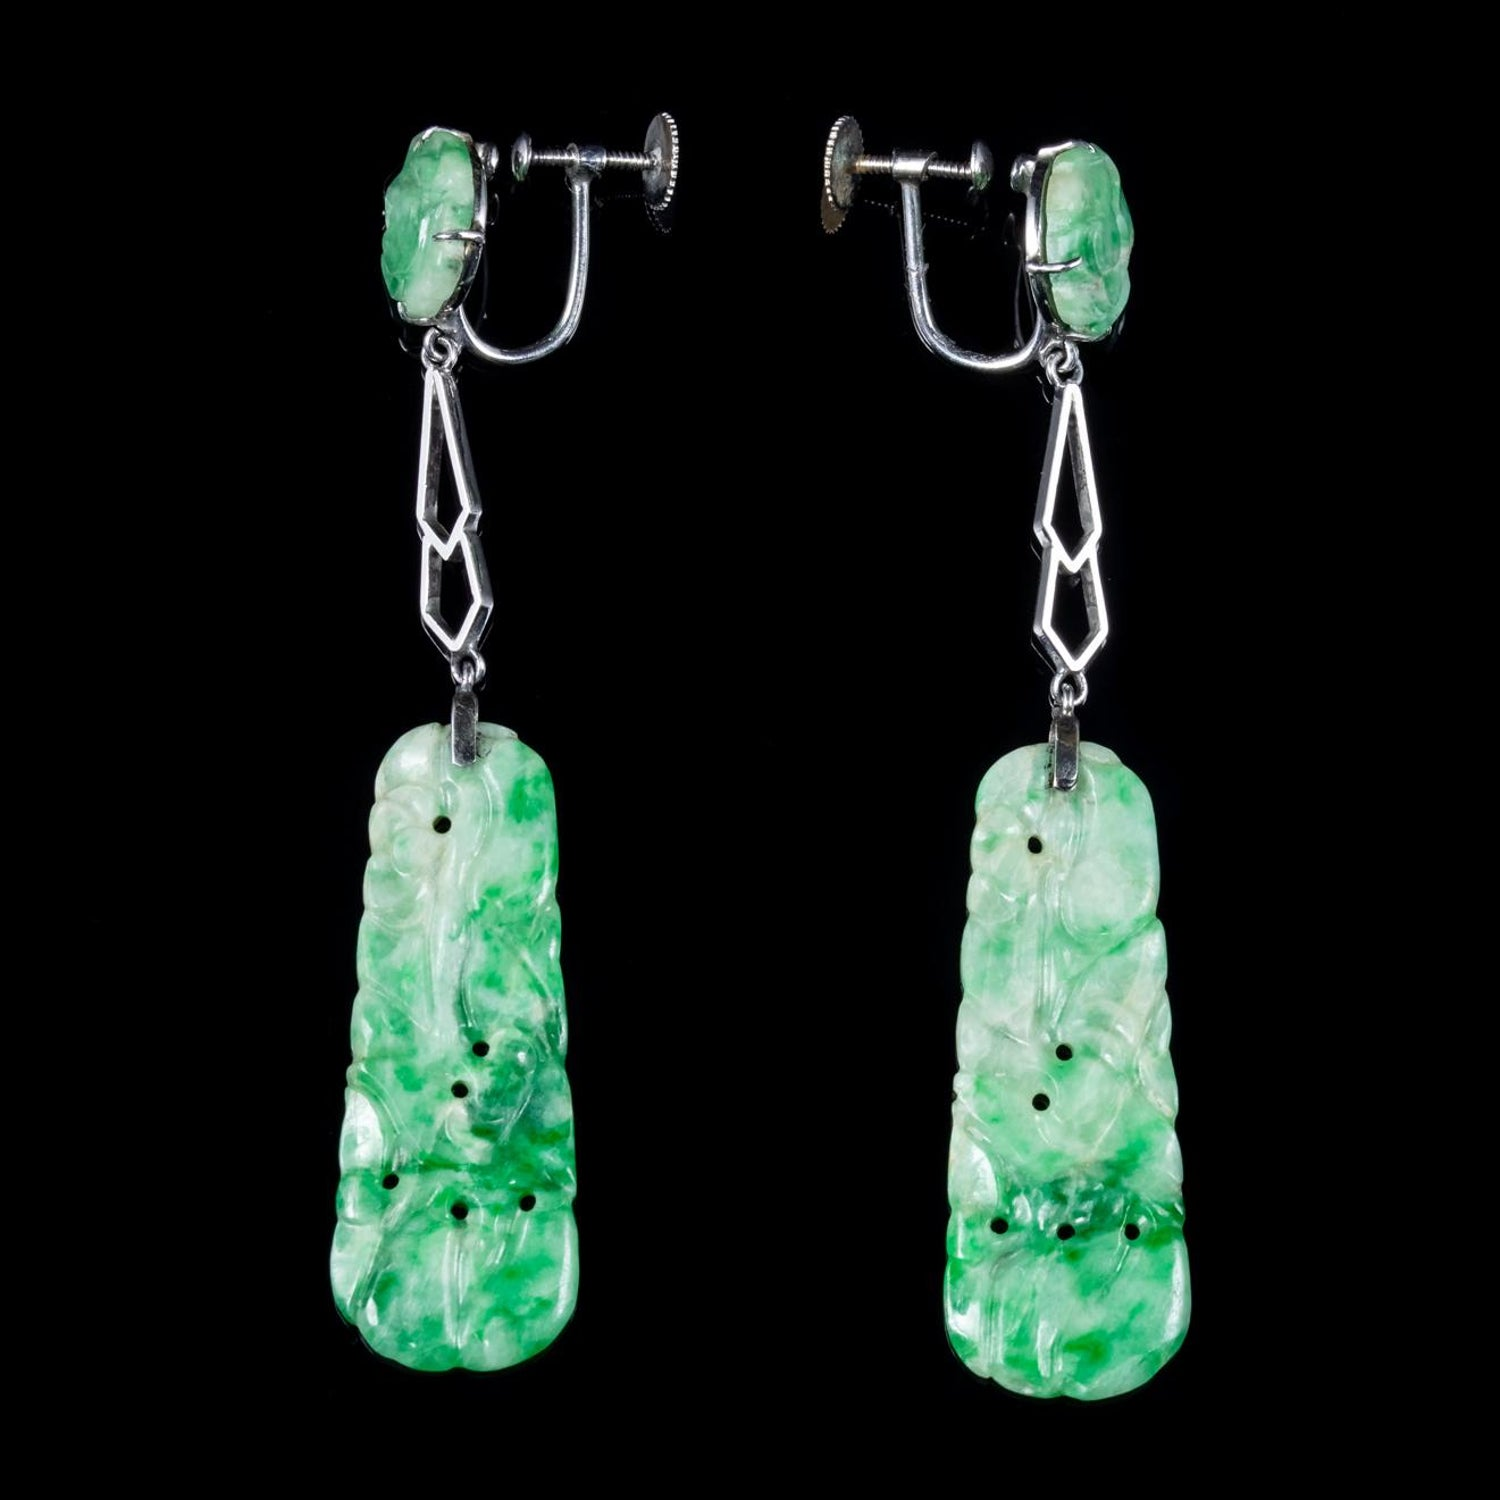 5af36fdfc Art Deco Jade Drop Earrings 9 Carat White Gold, circa 1920 For Sale at  1stdibs